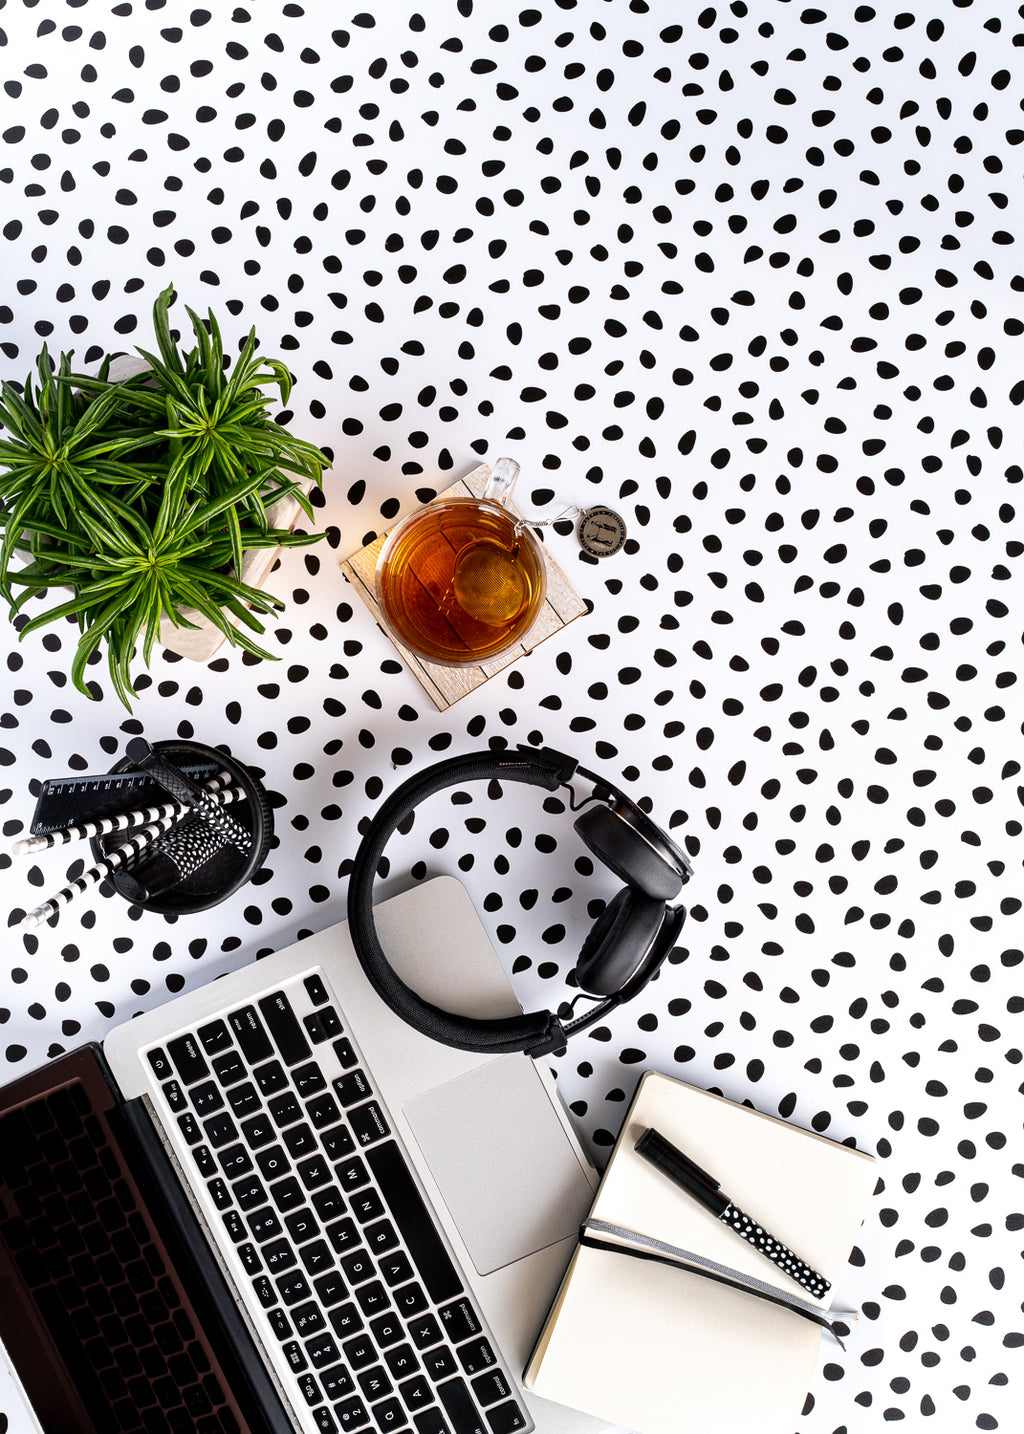 Dotty Vinyl Backdrop by Photography Backdrop Club [60 x 90cm / ~2 x 3ft]